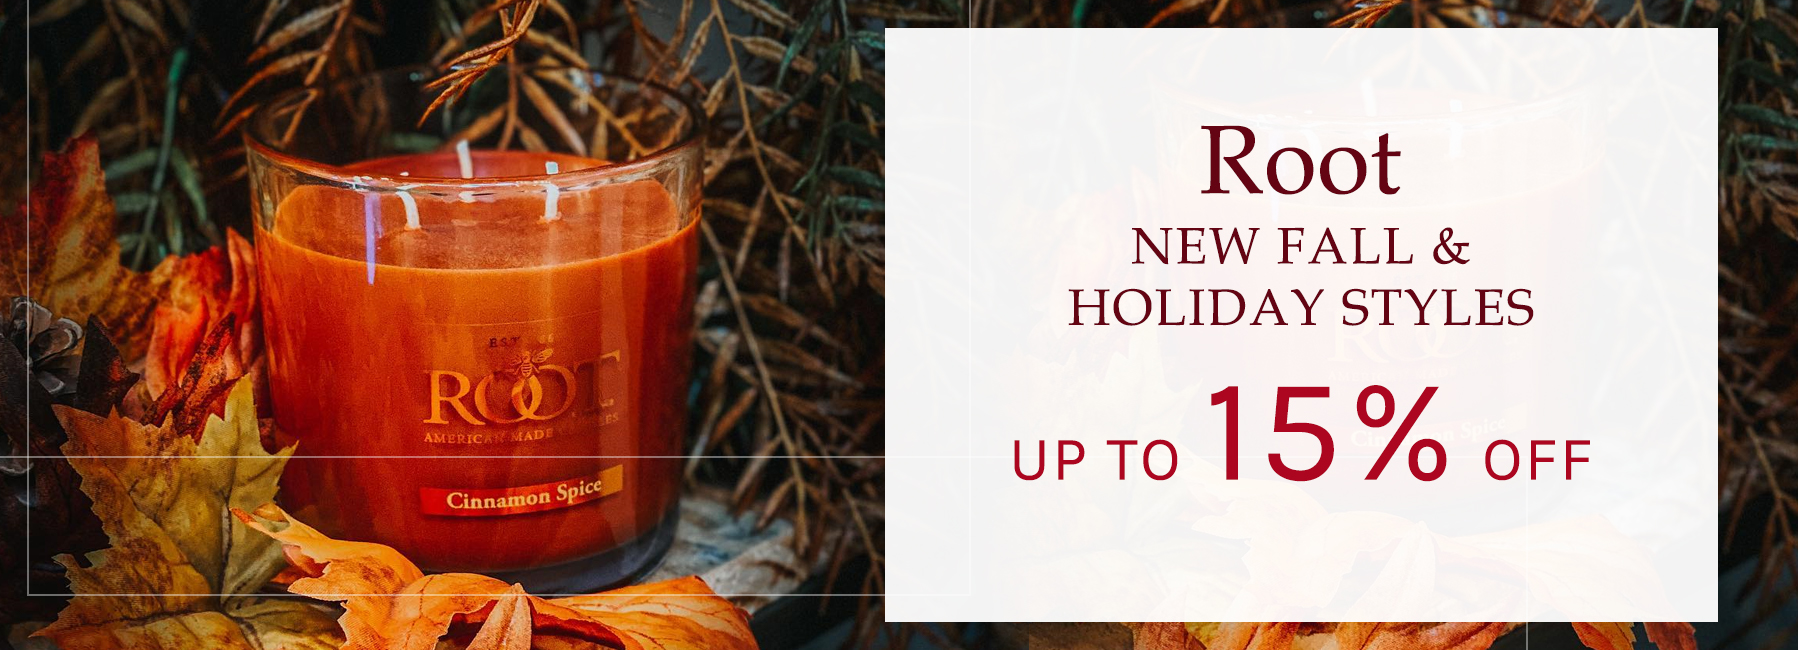 Root - NEW Fall and Holiday Styles - Up To 15 Percent OFF